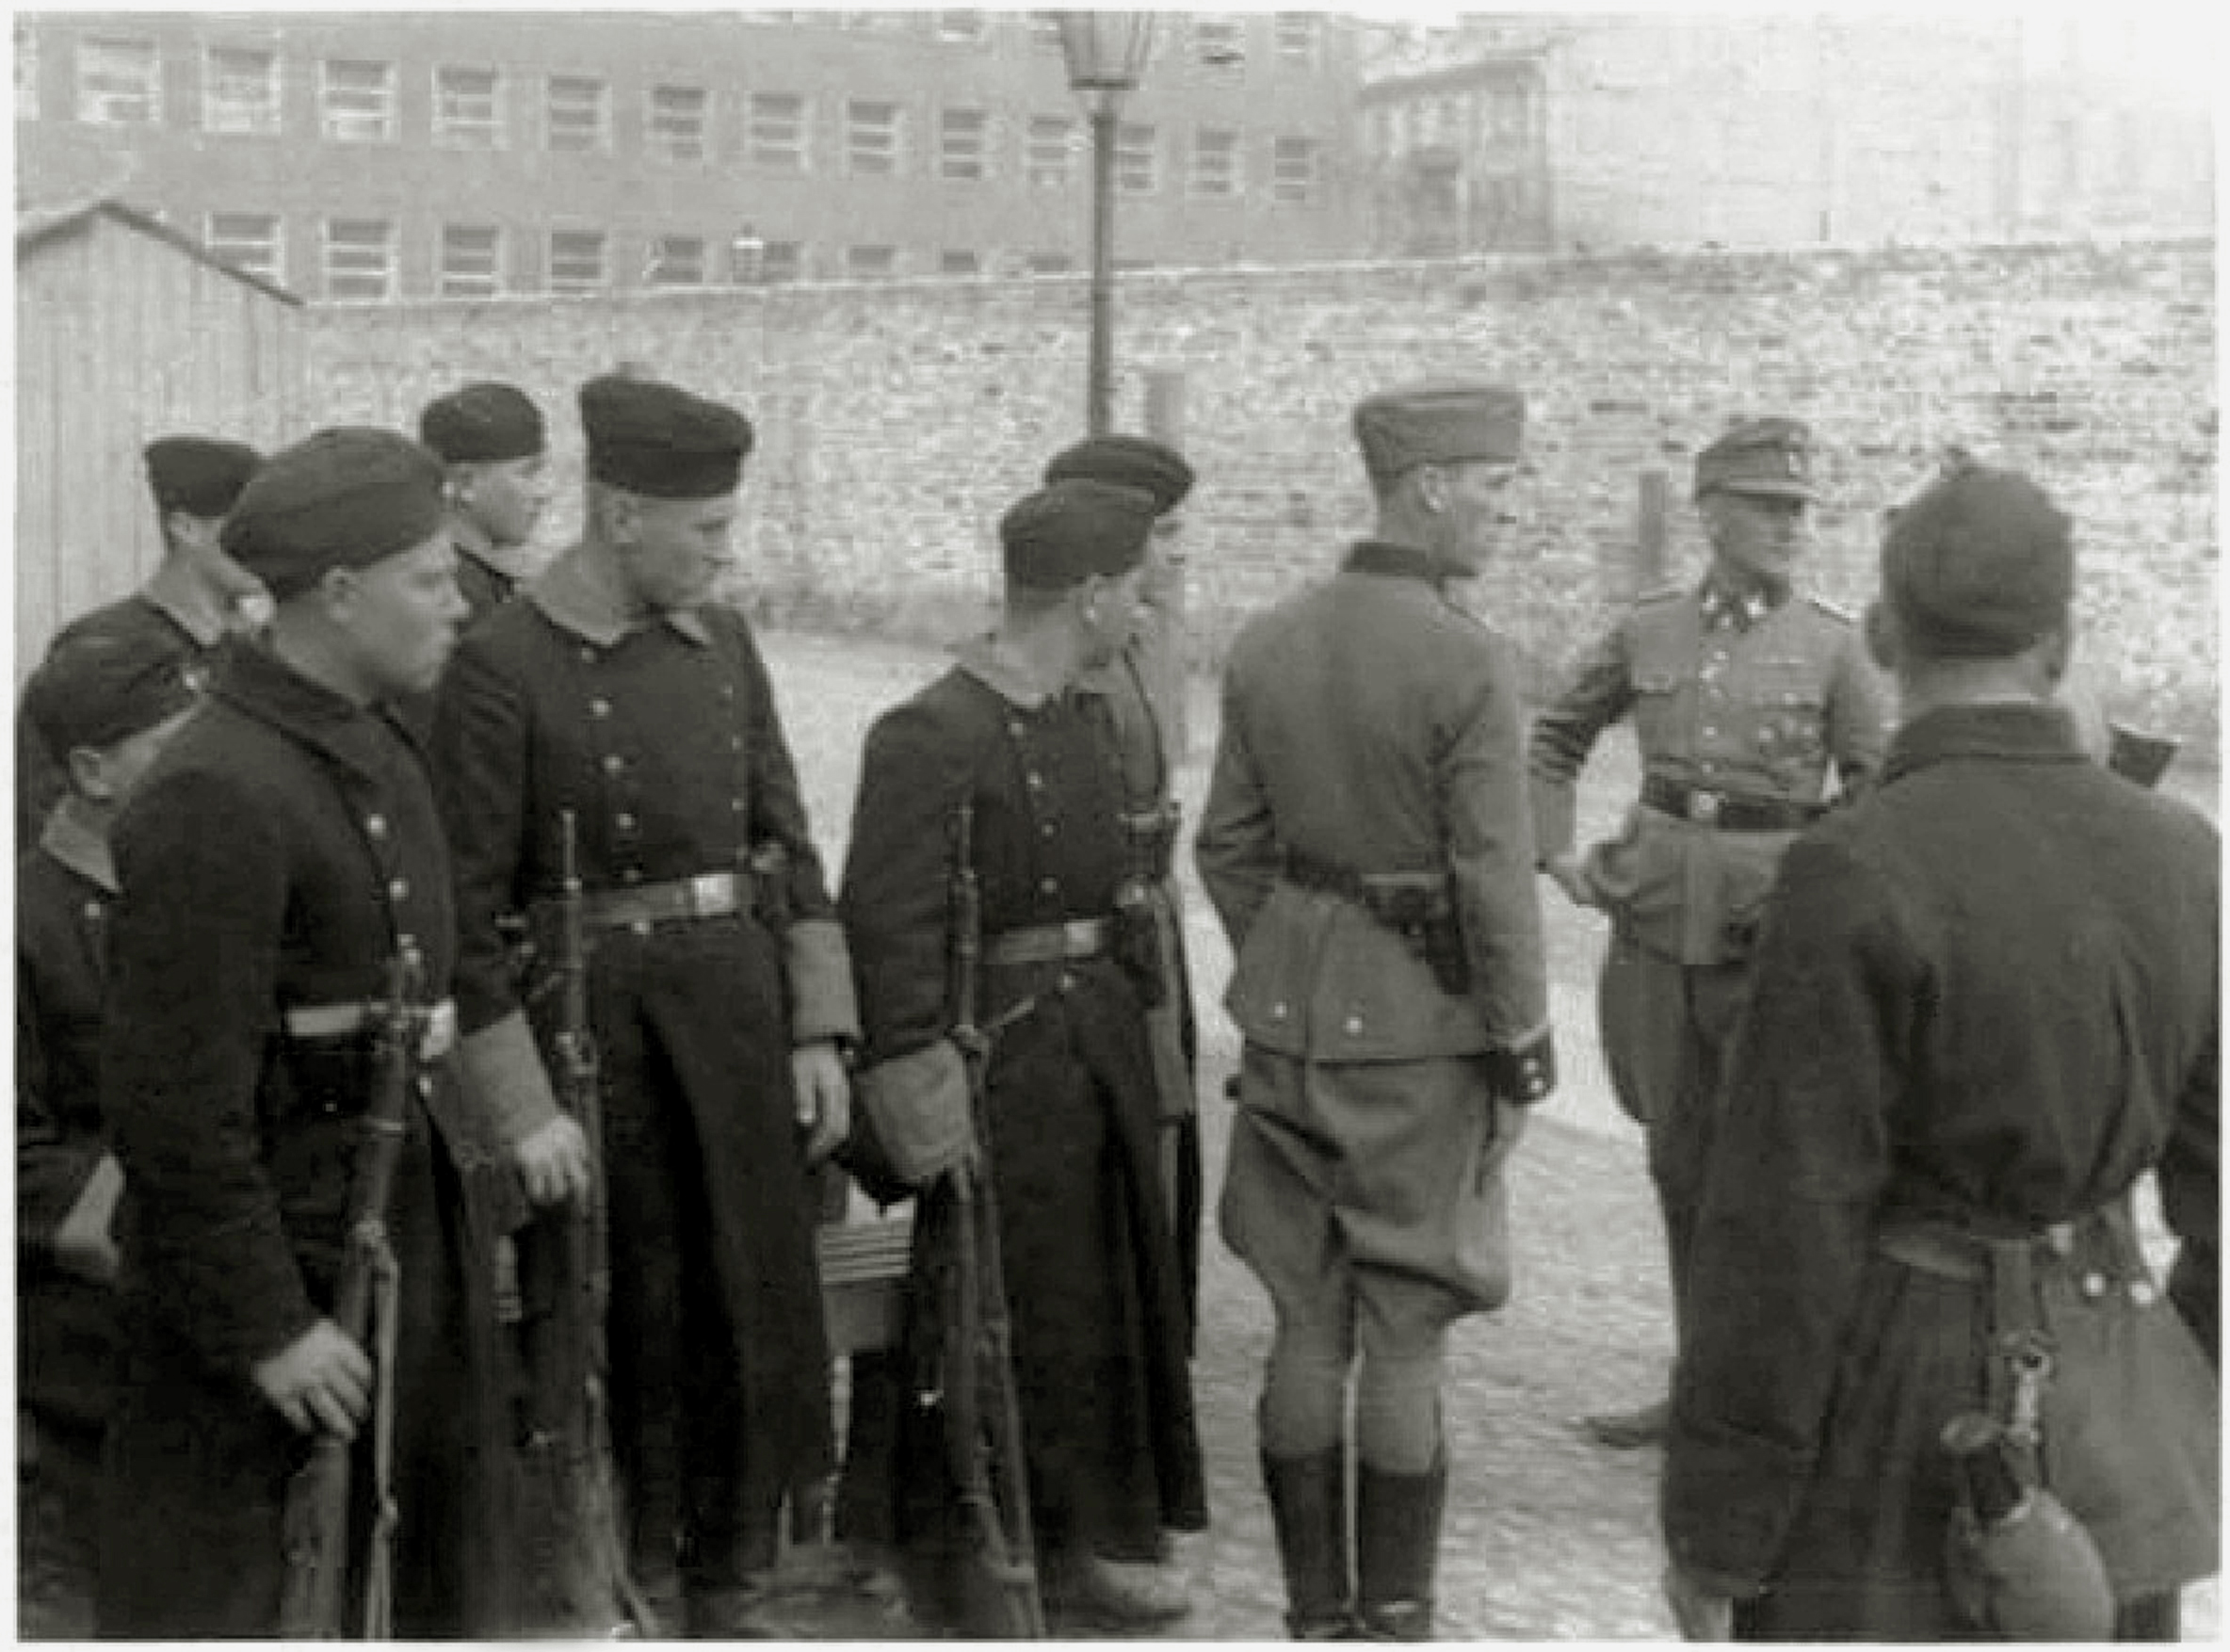 https://upload.wikimedia.org/wikipedia/commons/4/4b/Warsaw_Ghetto_Uprising_Umschlagplatz_1943_05.jpg